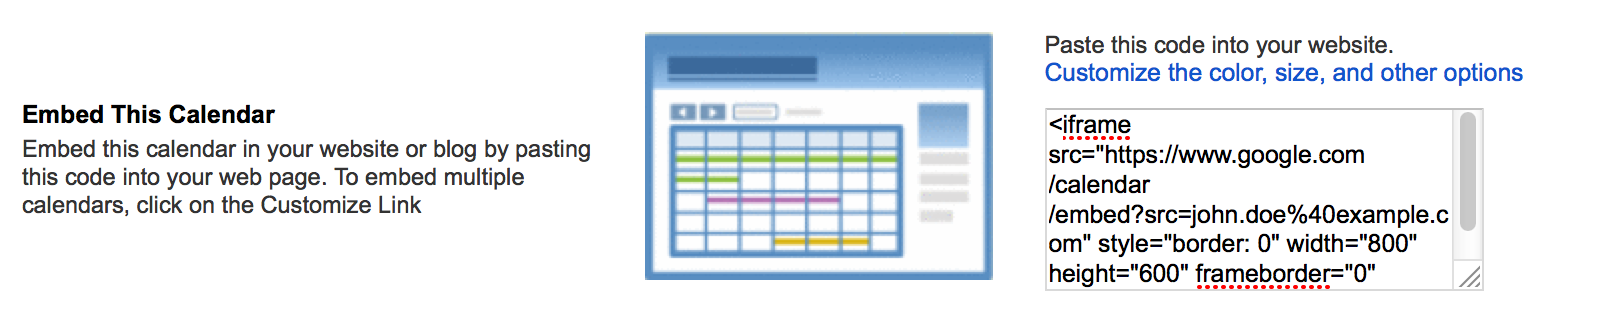 Embed Google Calendar into a website